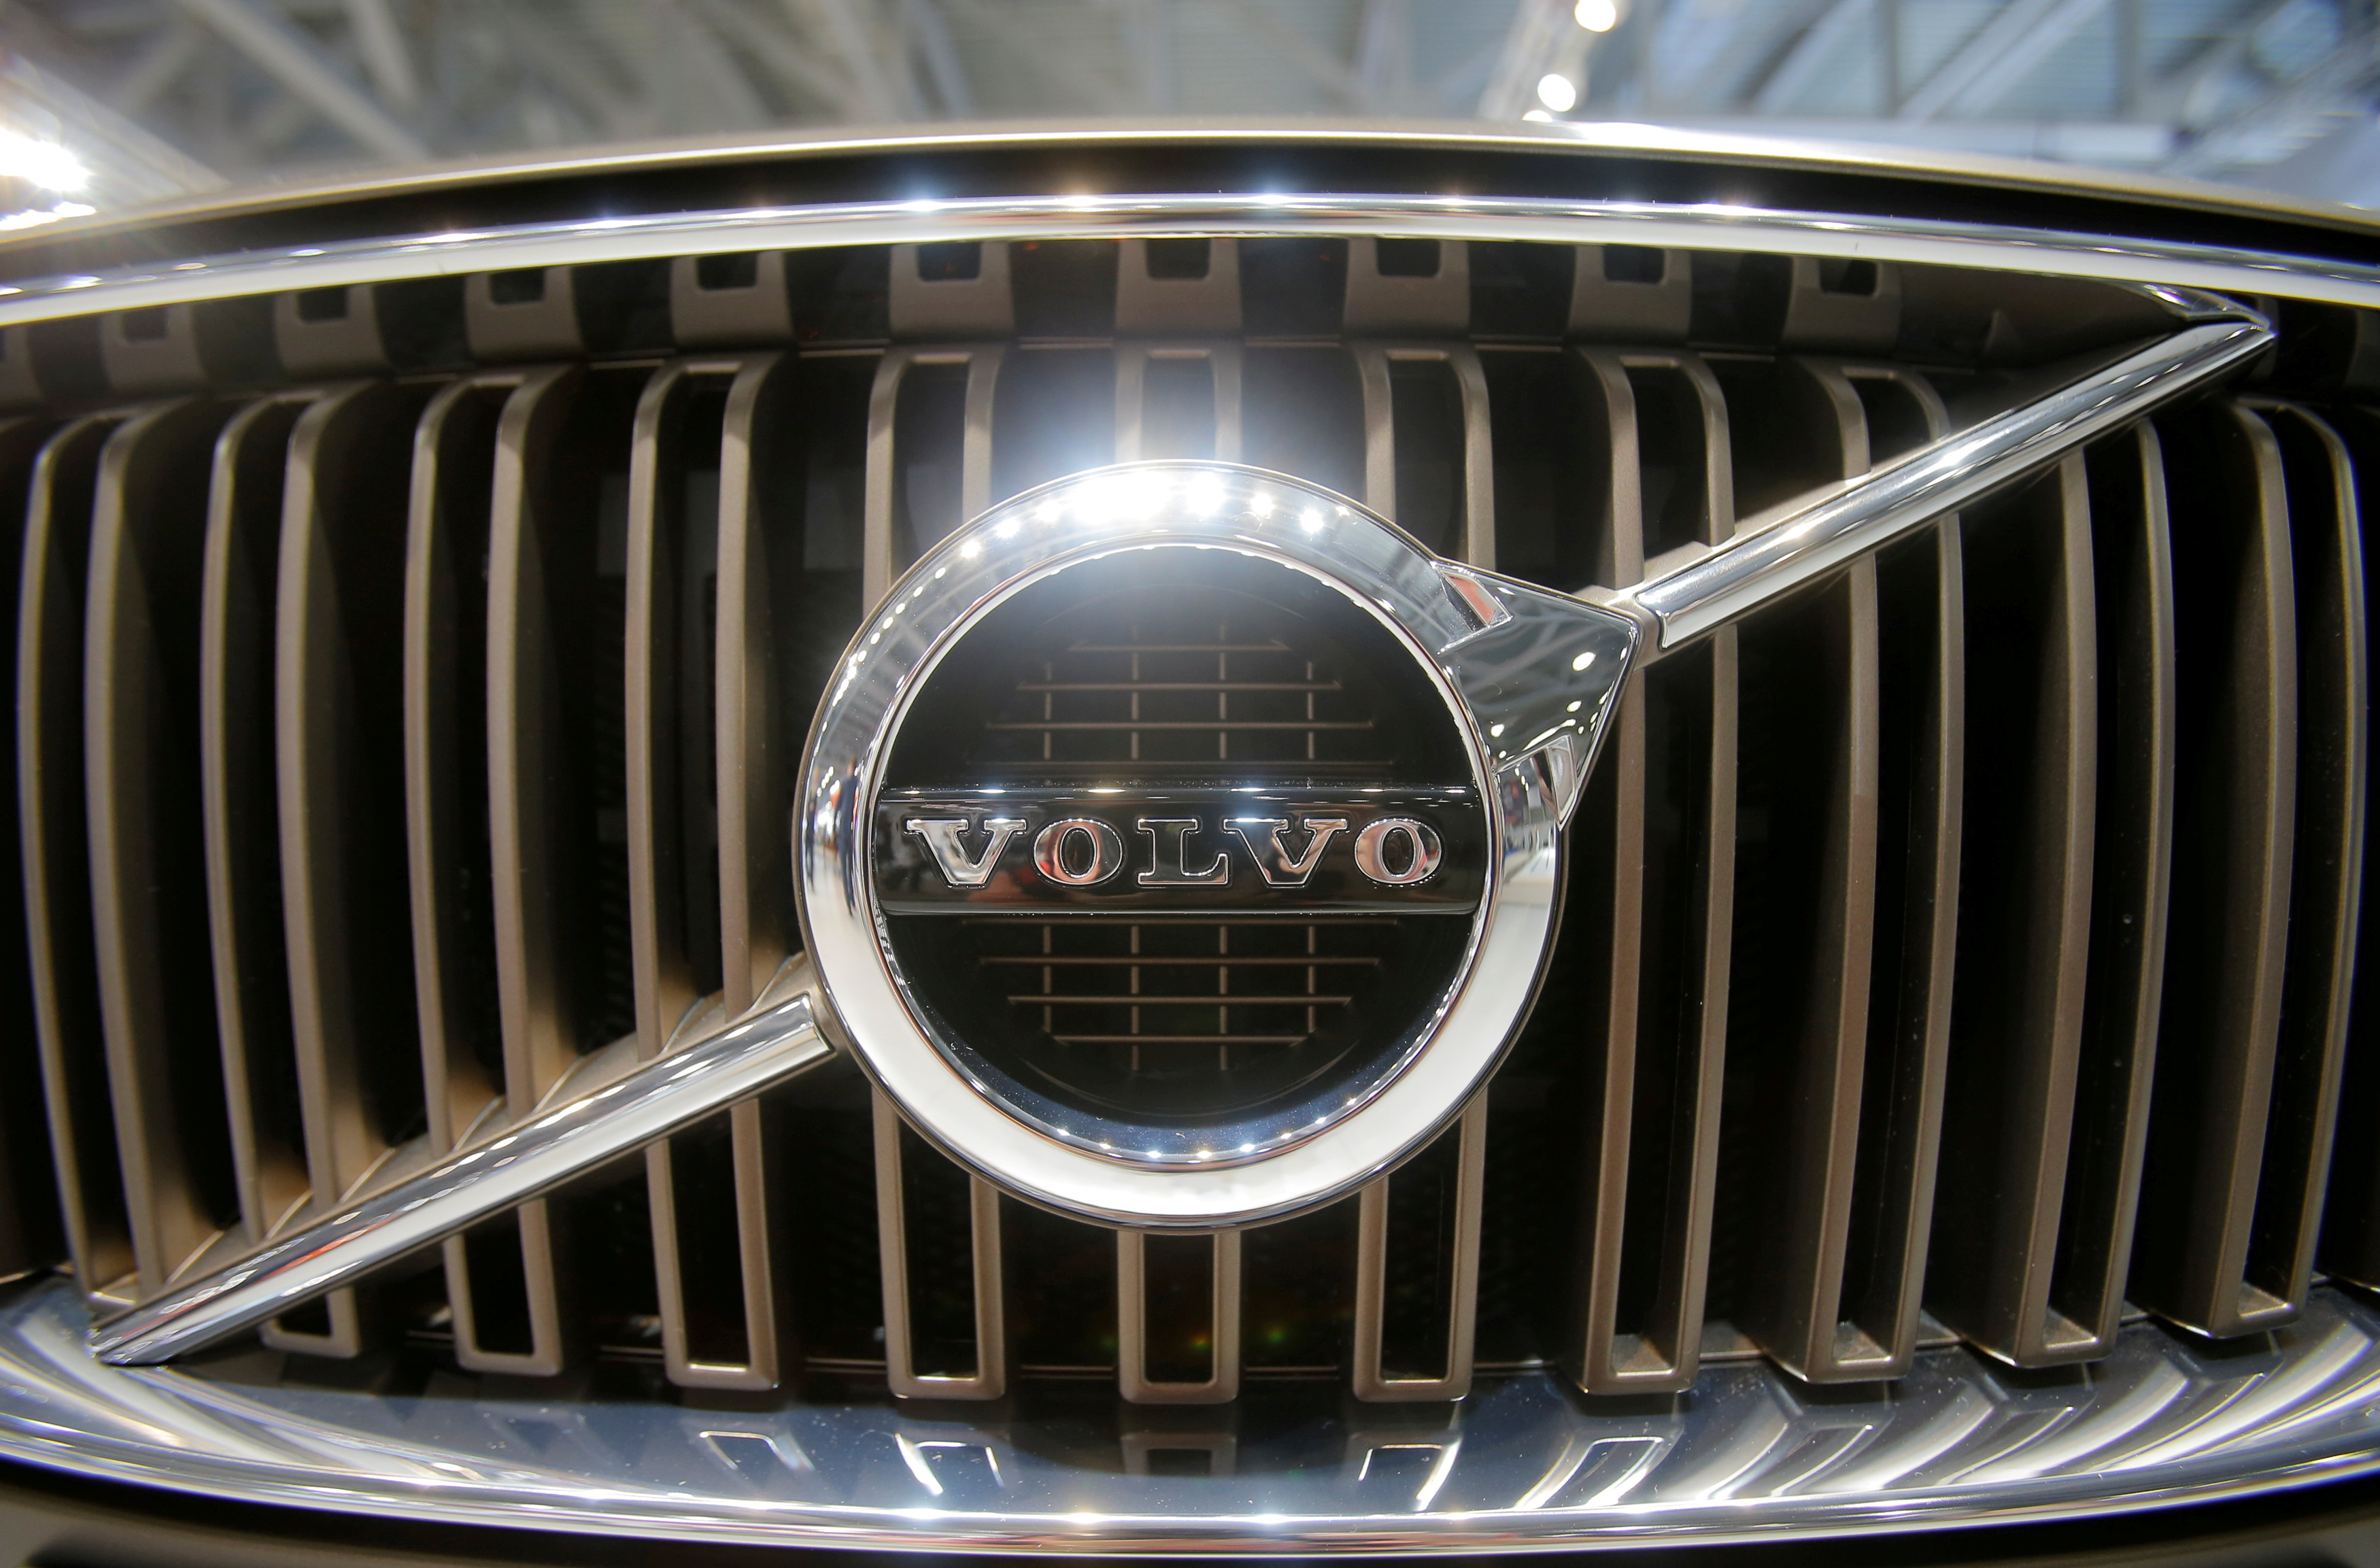 The logo of Volvo is seen on the front grill of a Volvo car at the 2016 Moscow International Auto Salon in Moscow, Russia, August 24, 2016. REUTERS/Maxim Shemetov